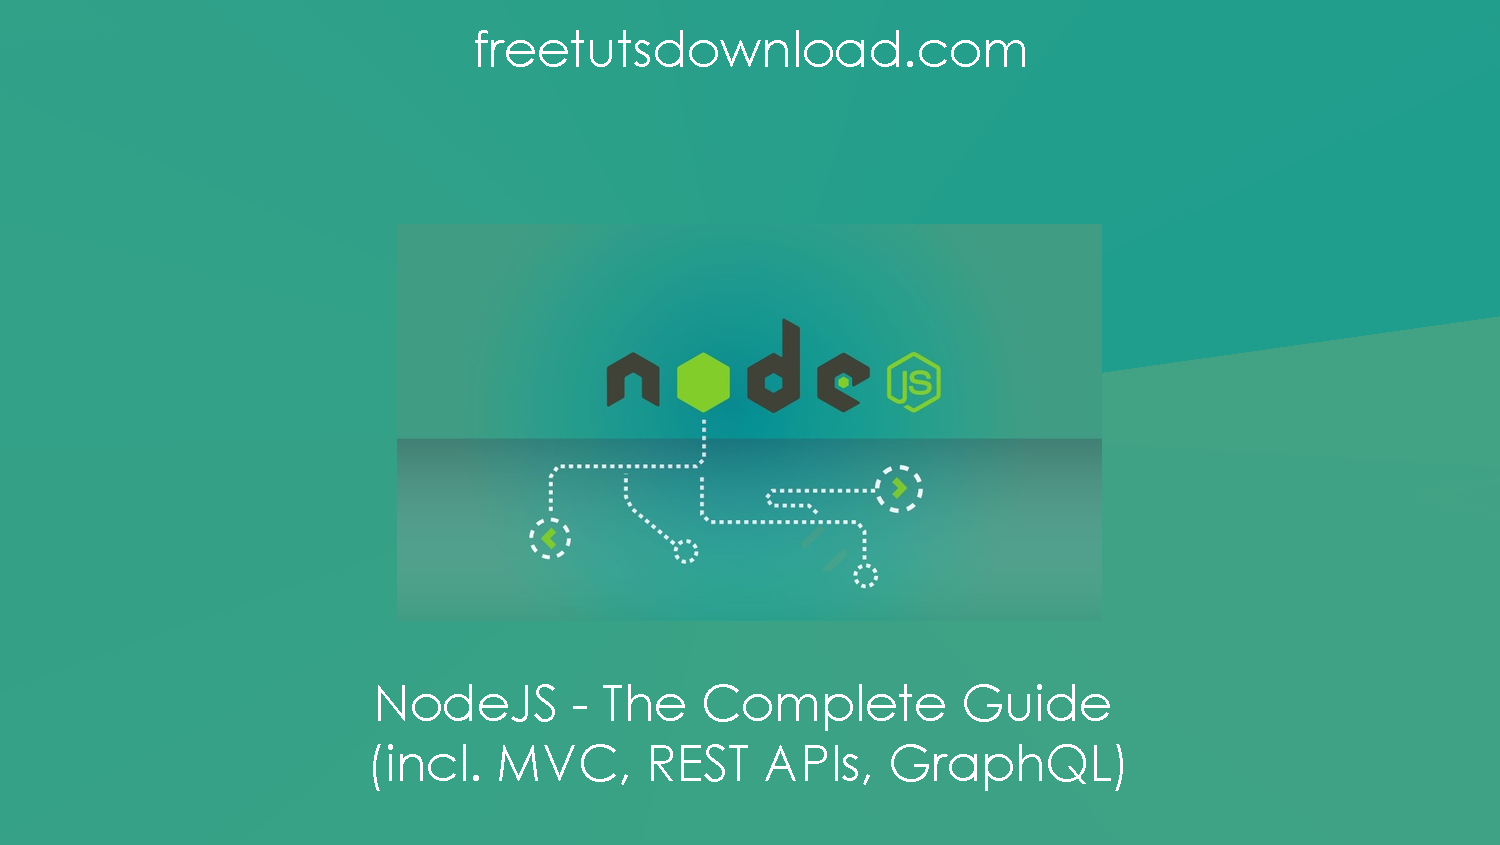 NodeJS - The Complete Guide (incl. MVC, REST APIs, GraphQL) free download